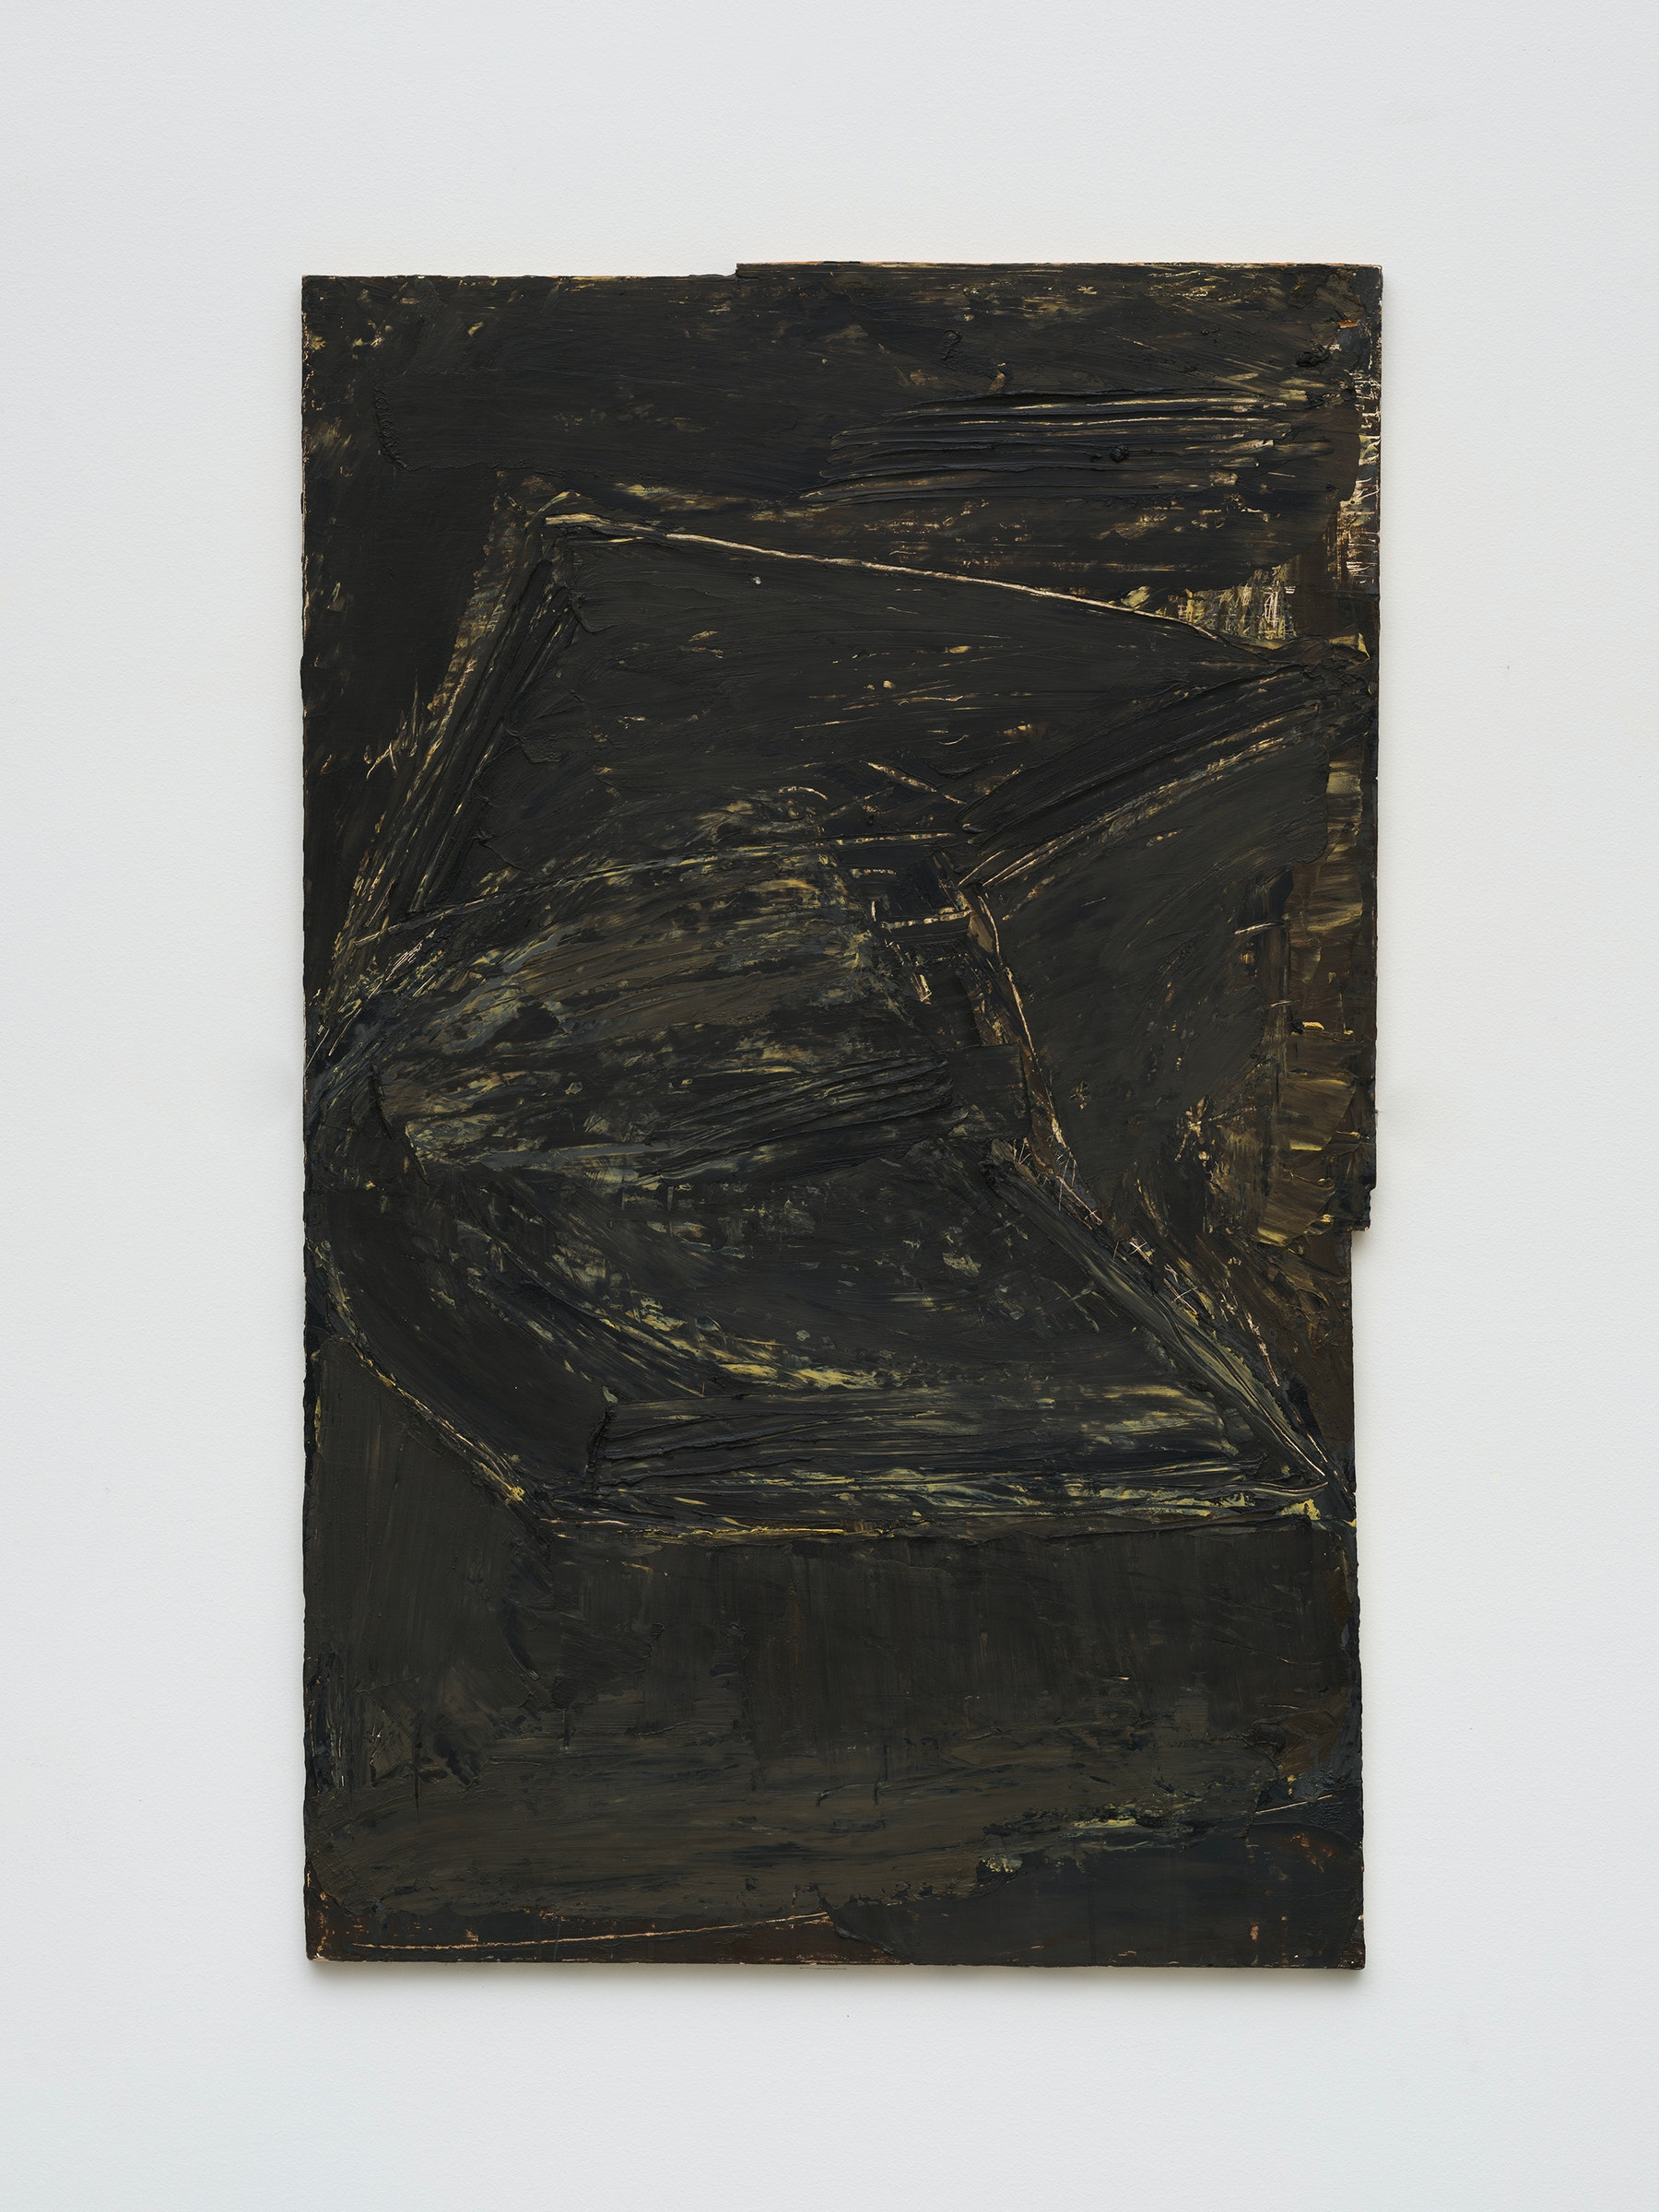 "Louise Fishman ""ST. LUCY, MARTYR,"" 1974 Oil and wax on plywood 38 ¹⁄₄"" x 23 ³⁄₄"" [HxW] (97.16 x 60.33 cm) Inventory #FIS175 Courtesy of the artist and Vielmetter Los Angeles Photo credit: Jeff Mclane"